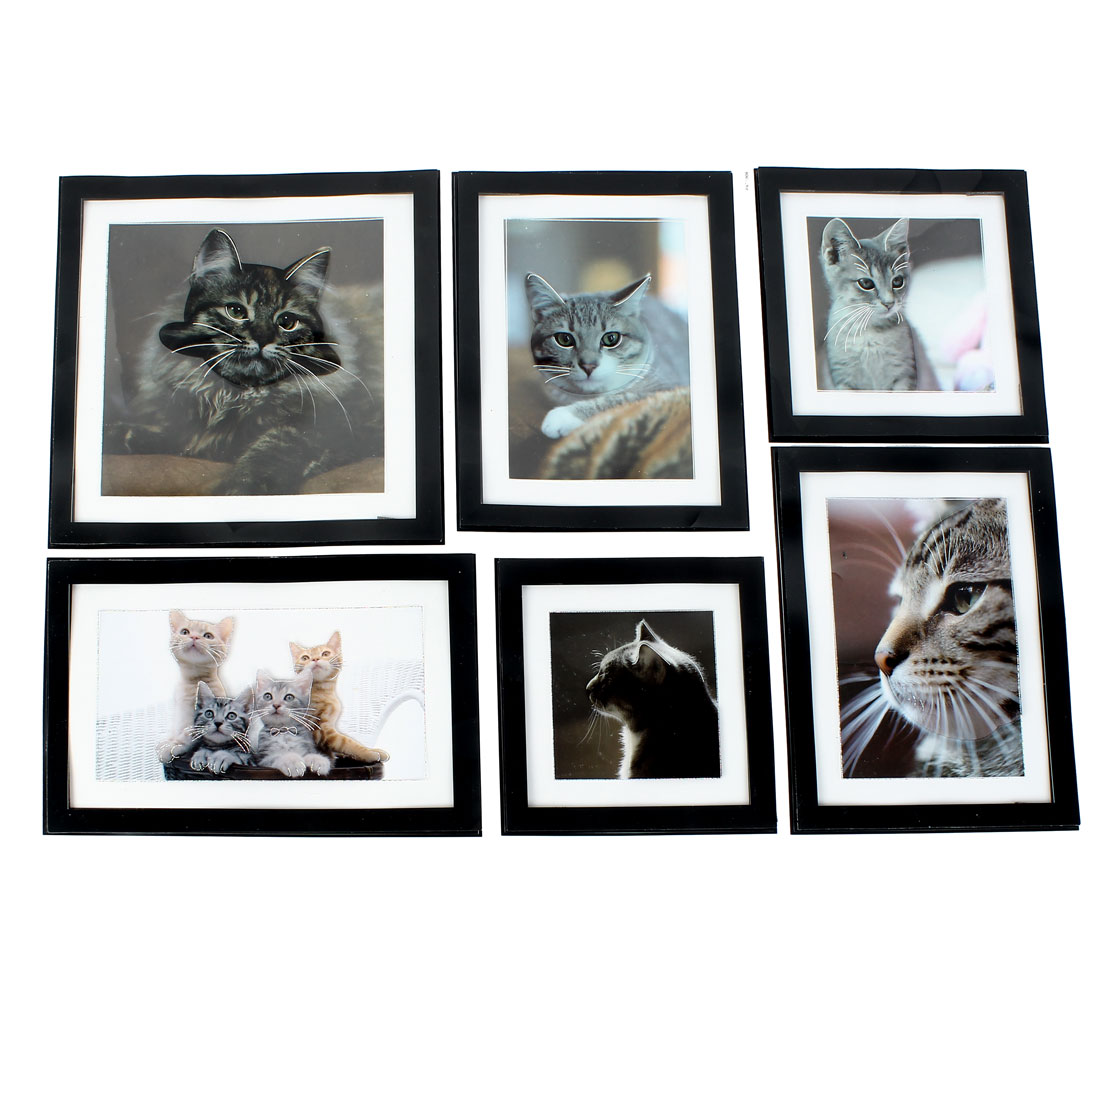 Home Living Room Decor 6 in 1 Cat Pictures 3D Wall Stickers Set Decal